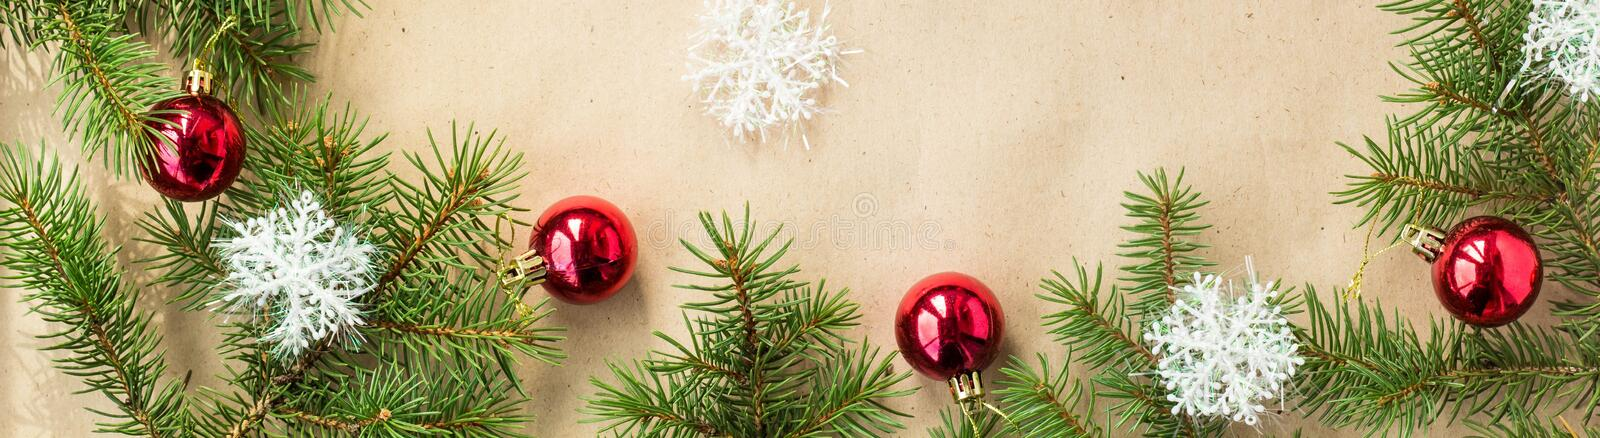 Banner of Festive christmas border with red balls on fir branches and snowflakes on rustic beige background royalty free stock photography